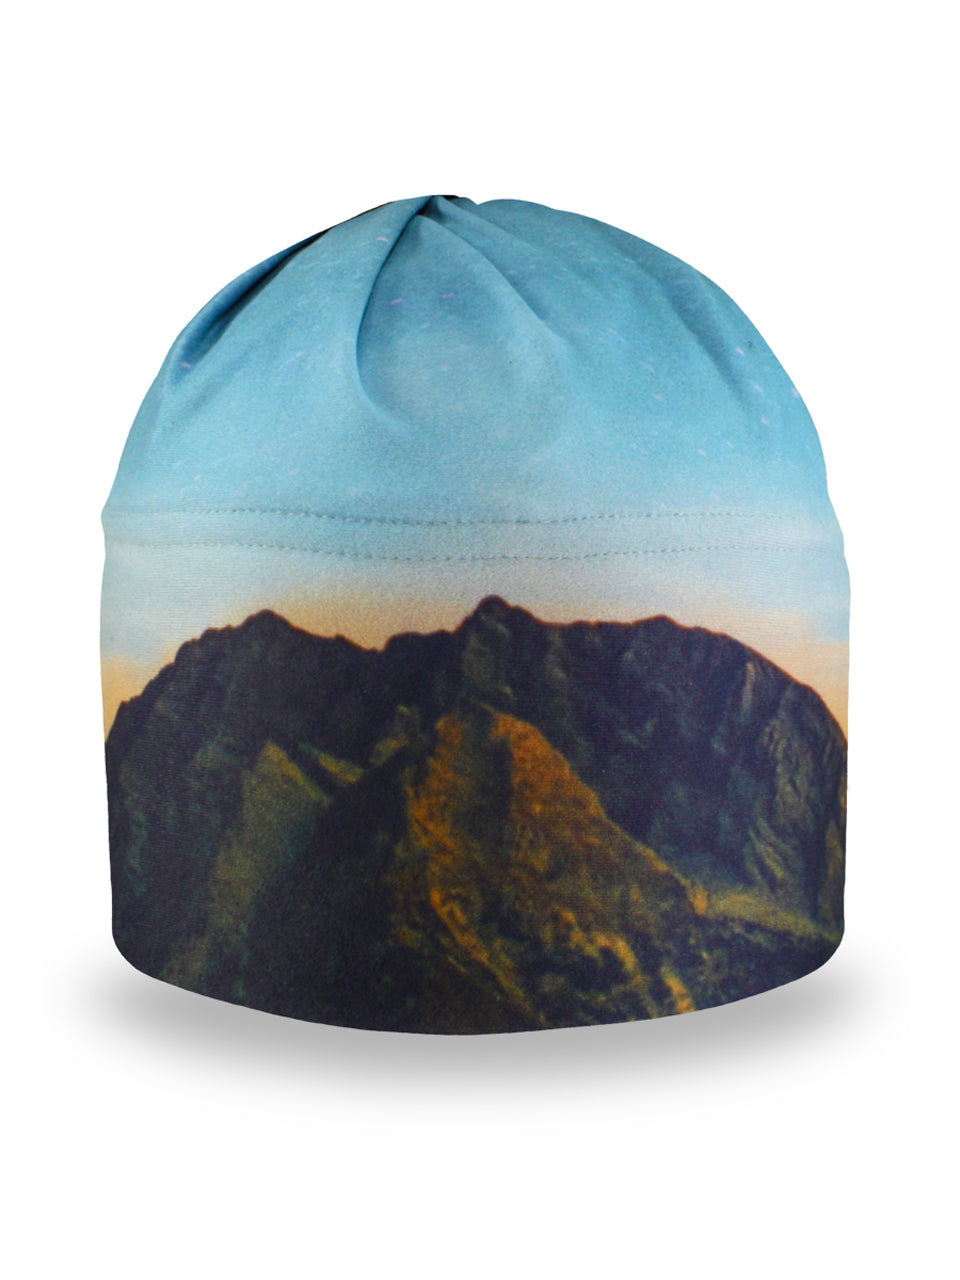 winter hat that features a sunset colored sky and mountain